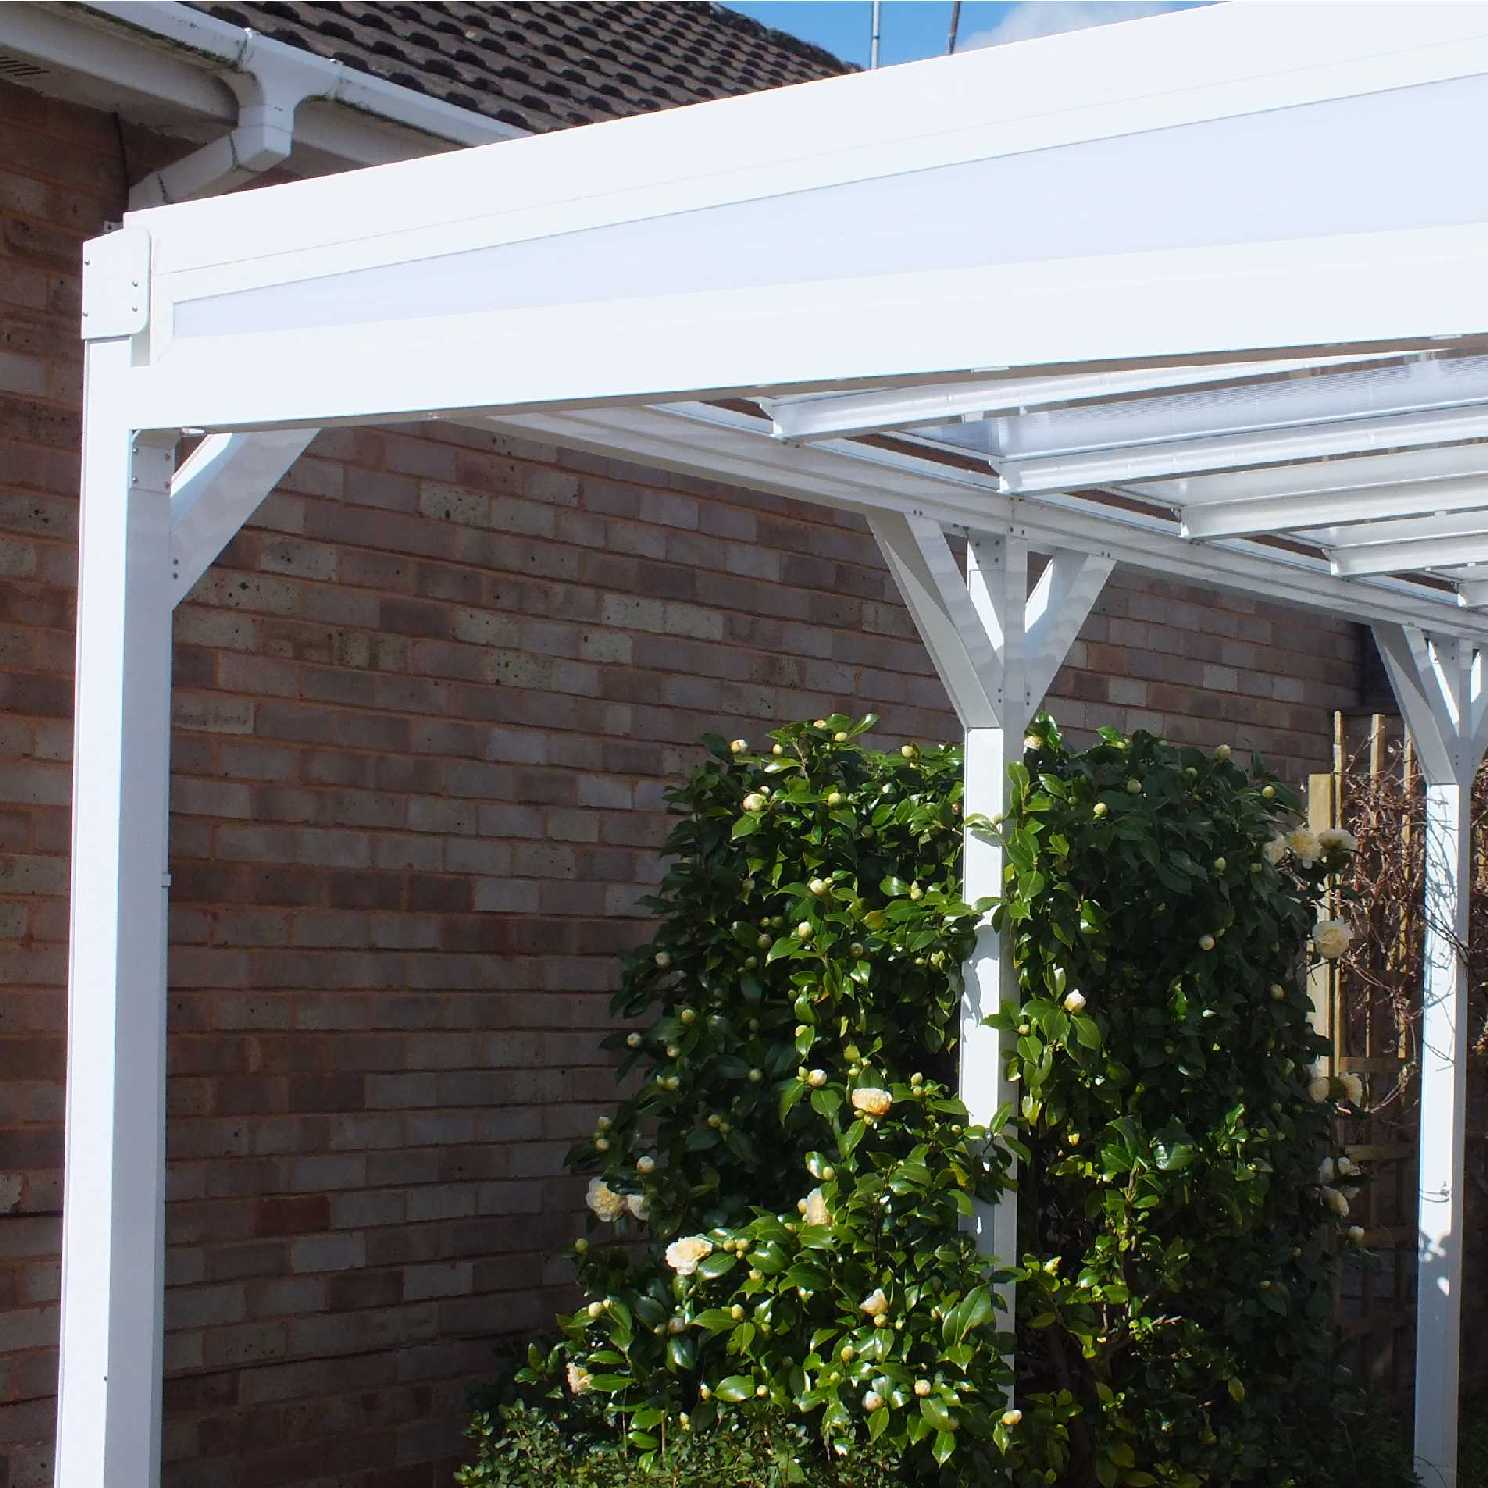 Omega Smart Lean-To Canopy with 16mm Polycarbonate Glazing - 8.4m (W) x 2.5m (P), (4) Supporting Posts from Omega Build